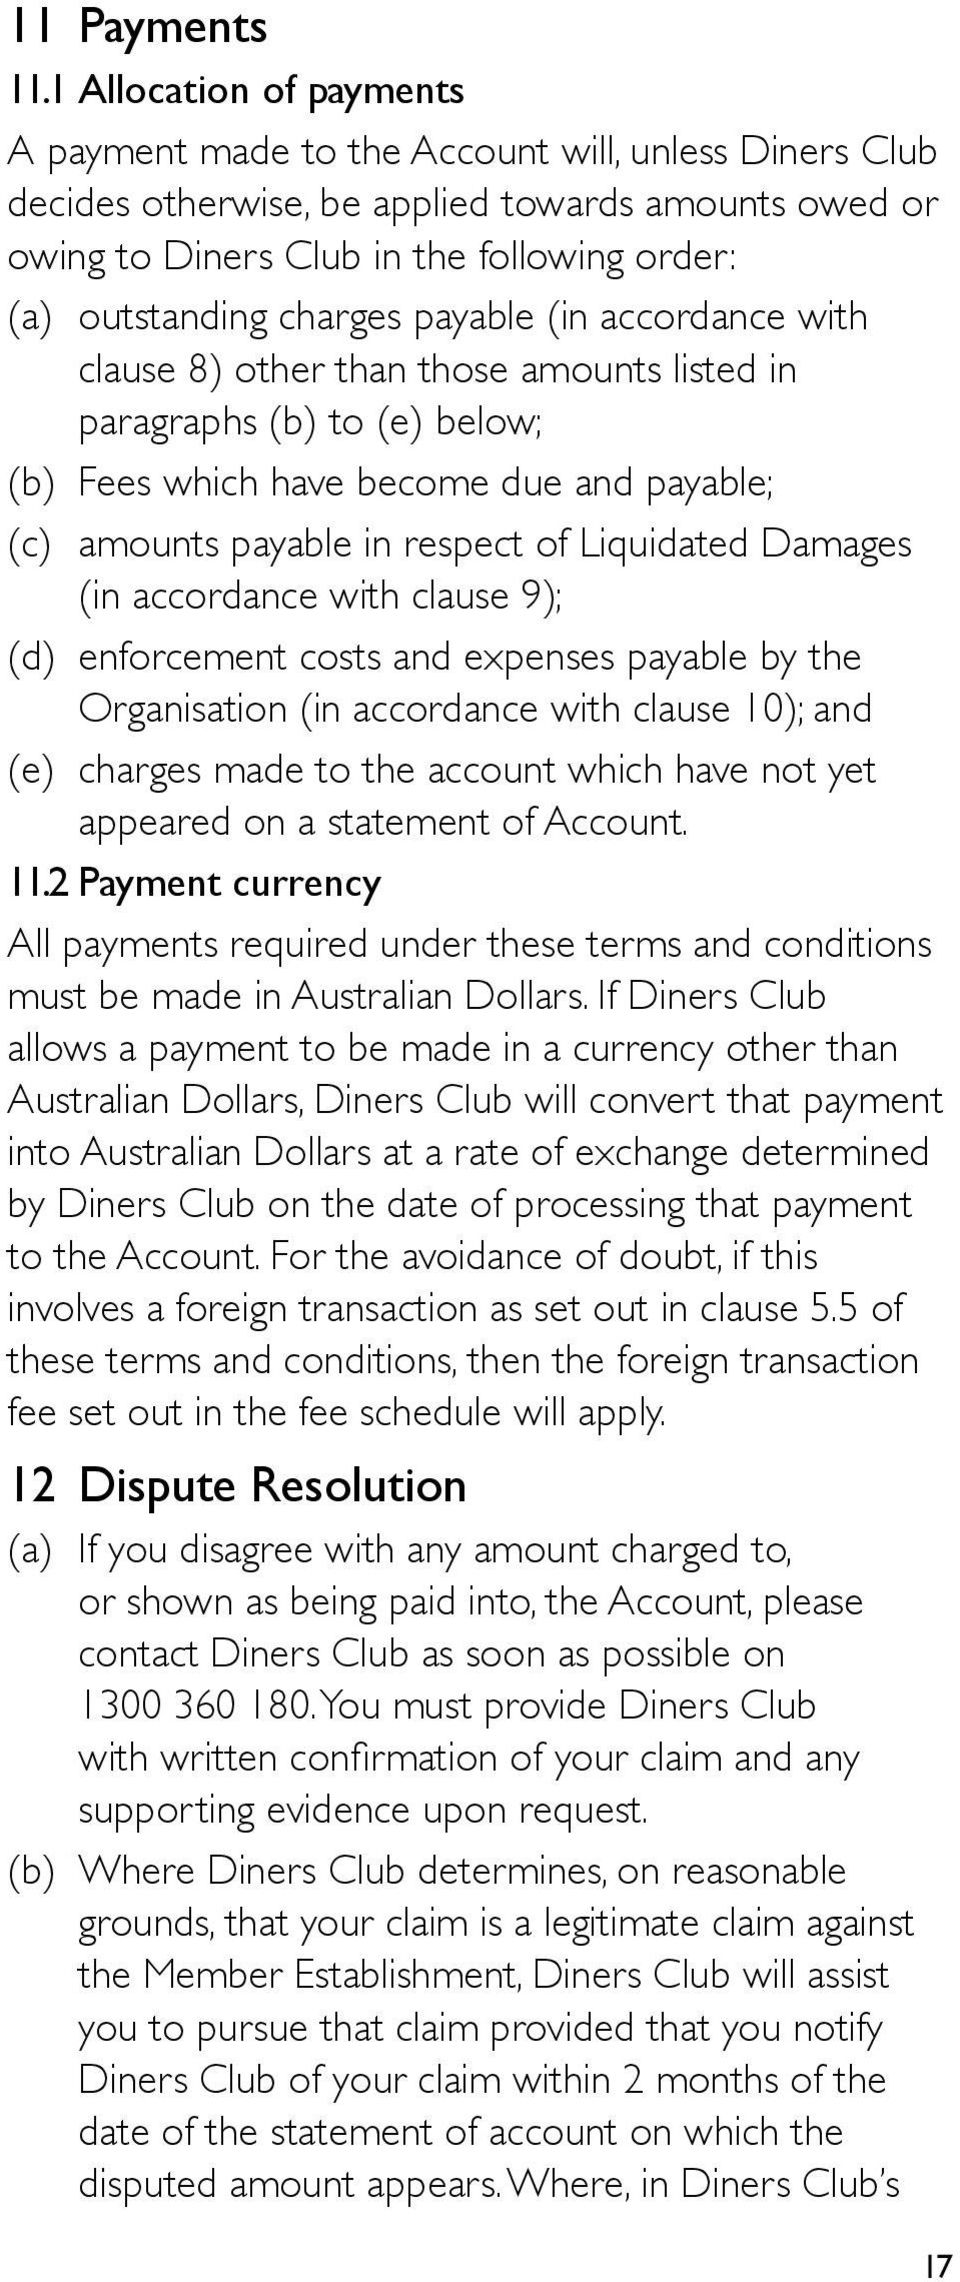 charges payable (in accordance with clause 8) other than those amounts listed in paragraphs (b) to (e) below; (b) Fees which have become due and payable; (c) amounts payable in respect of Liquidated